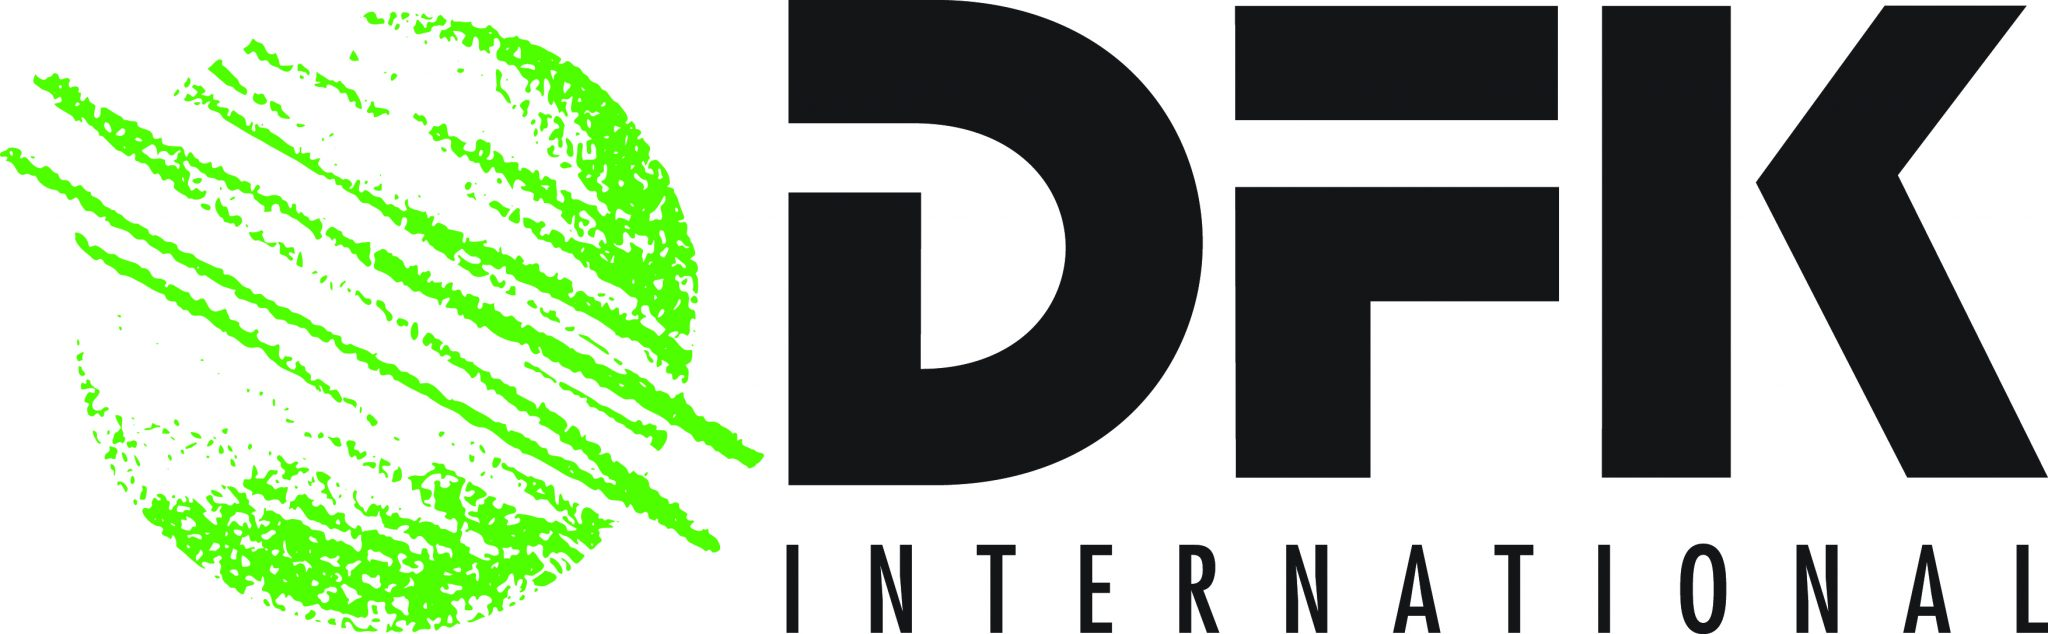 DFK logo_CMYK-INTERNATIONAL-resized v2